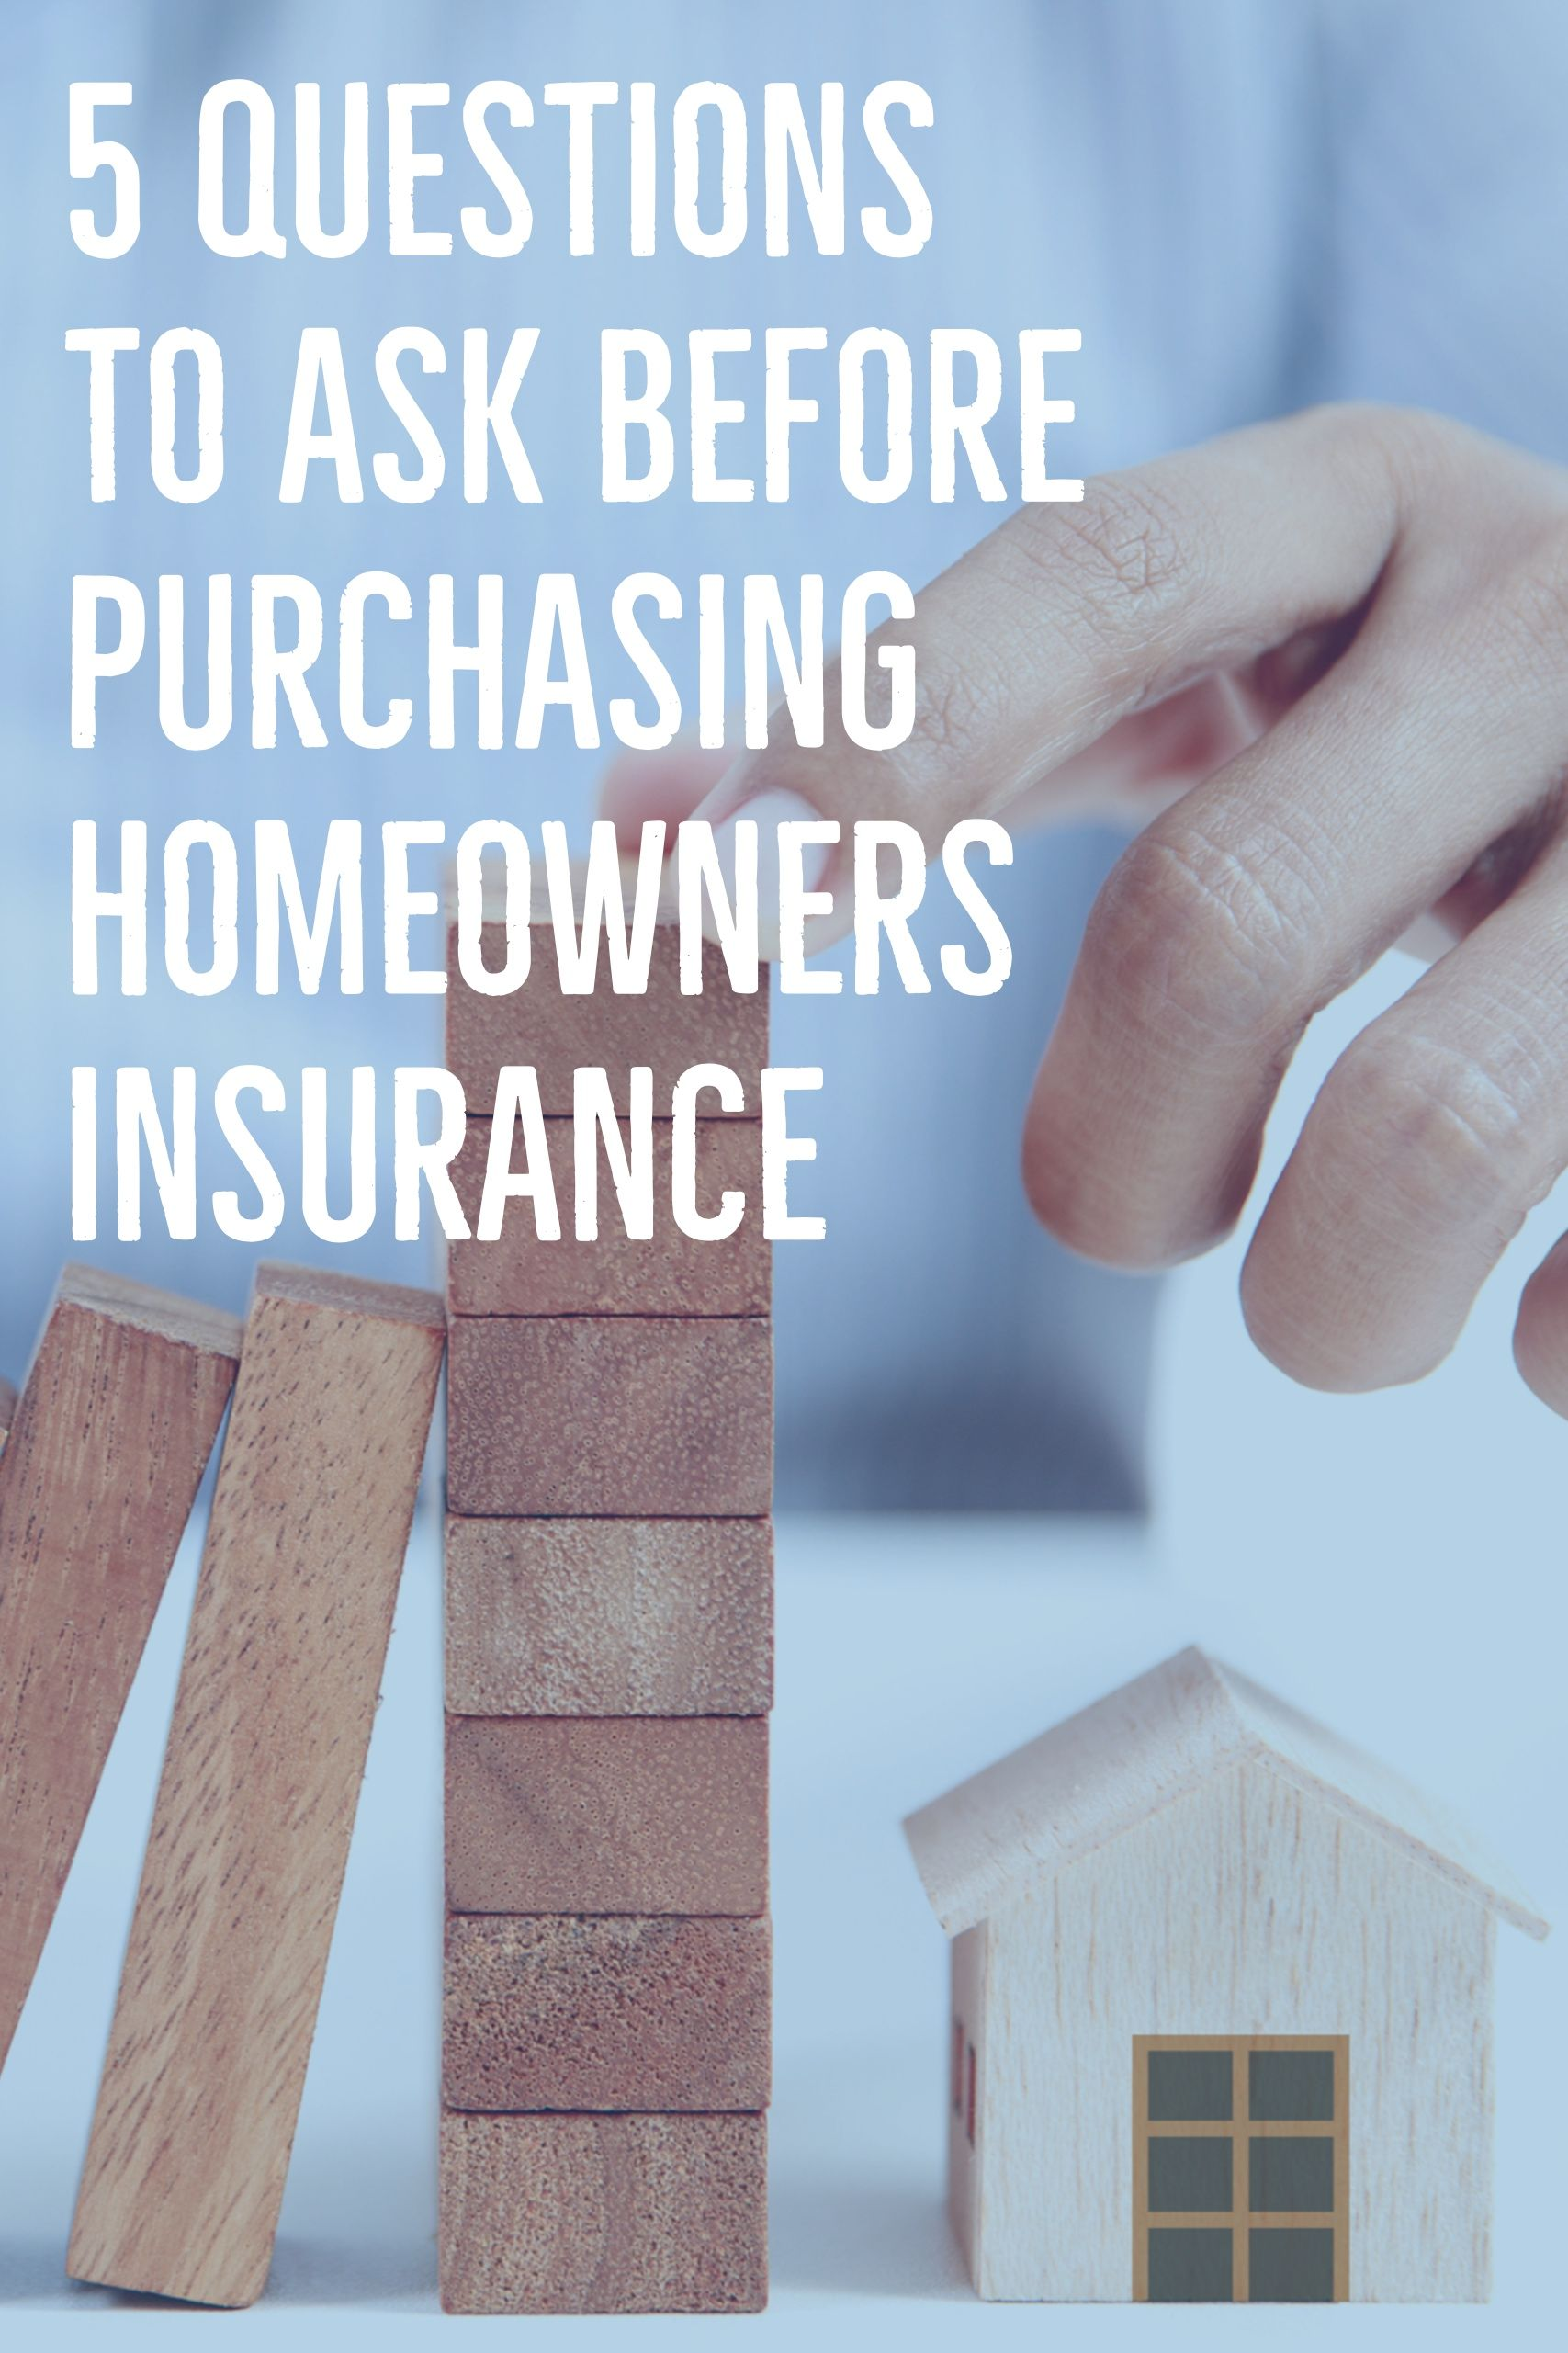 5 Questions to Ask Before Purchasing Homeowners Insurance ...